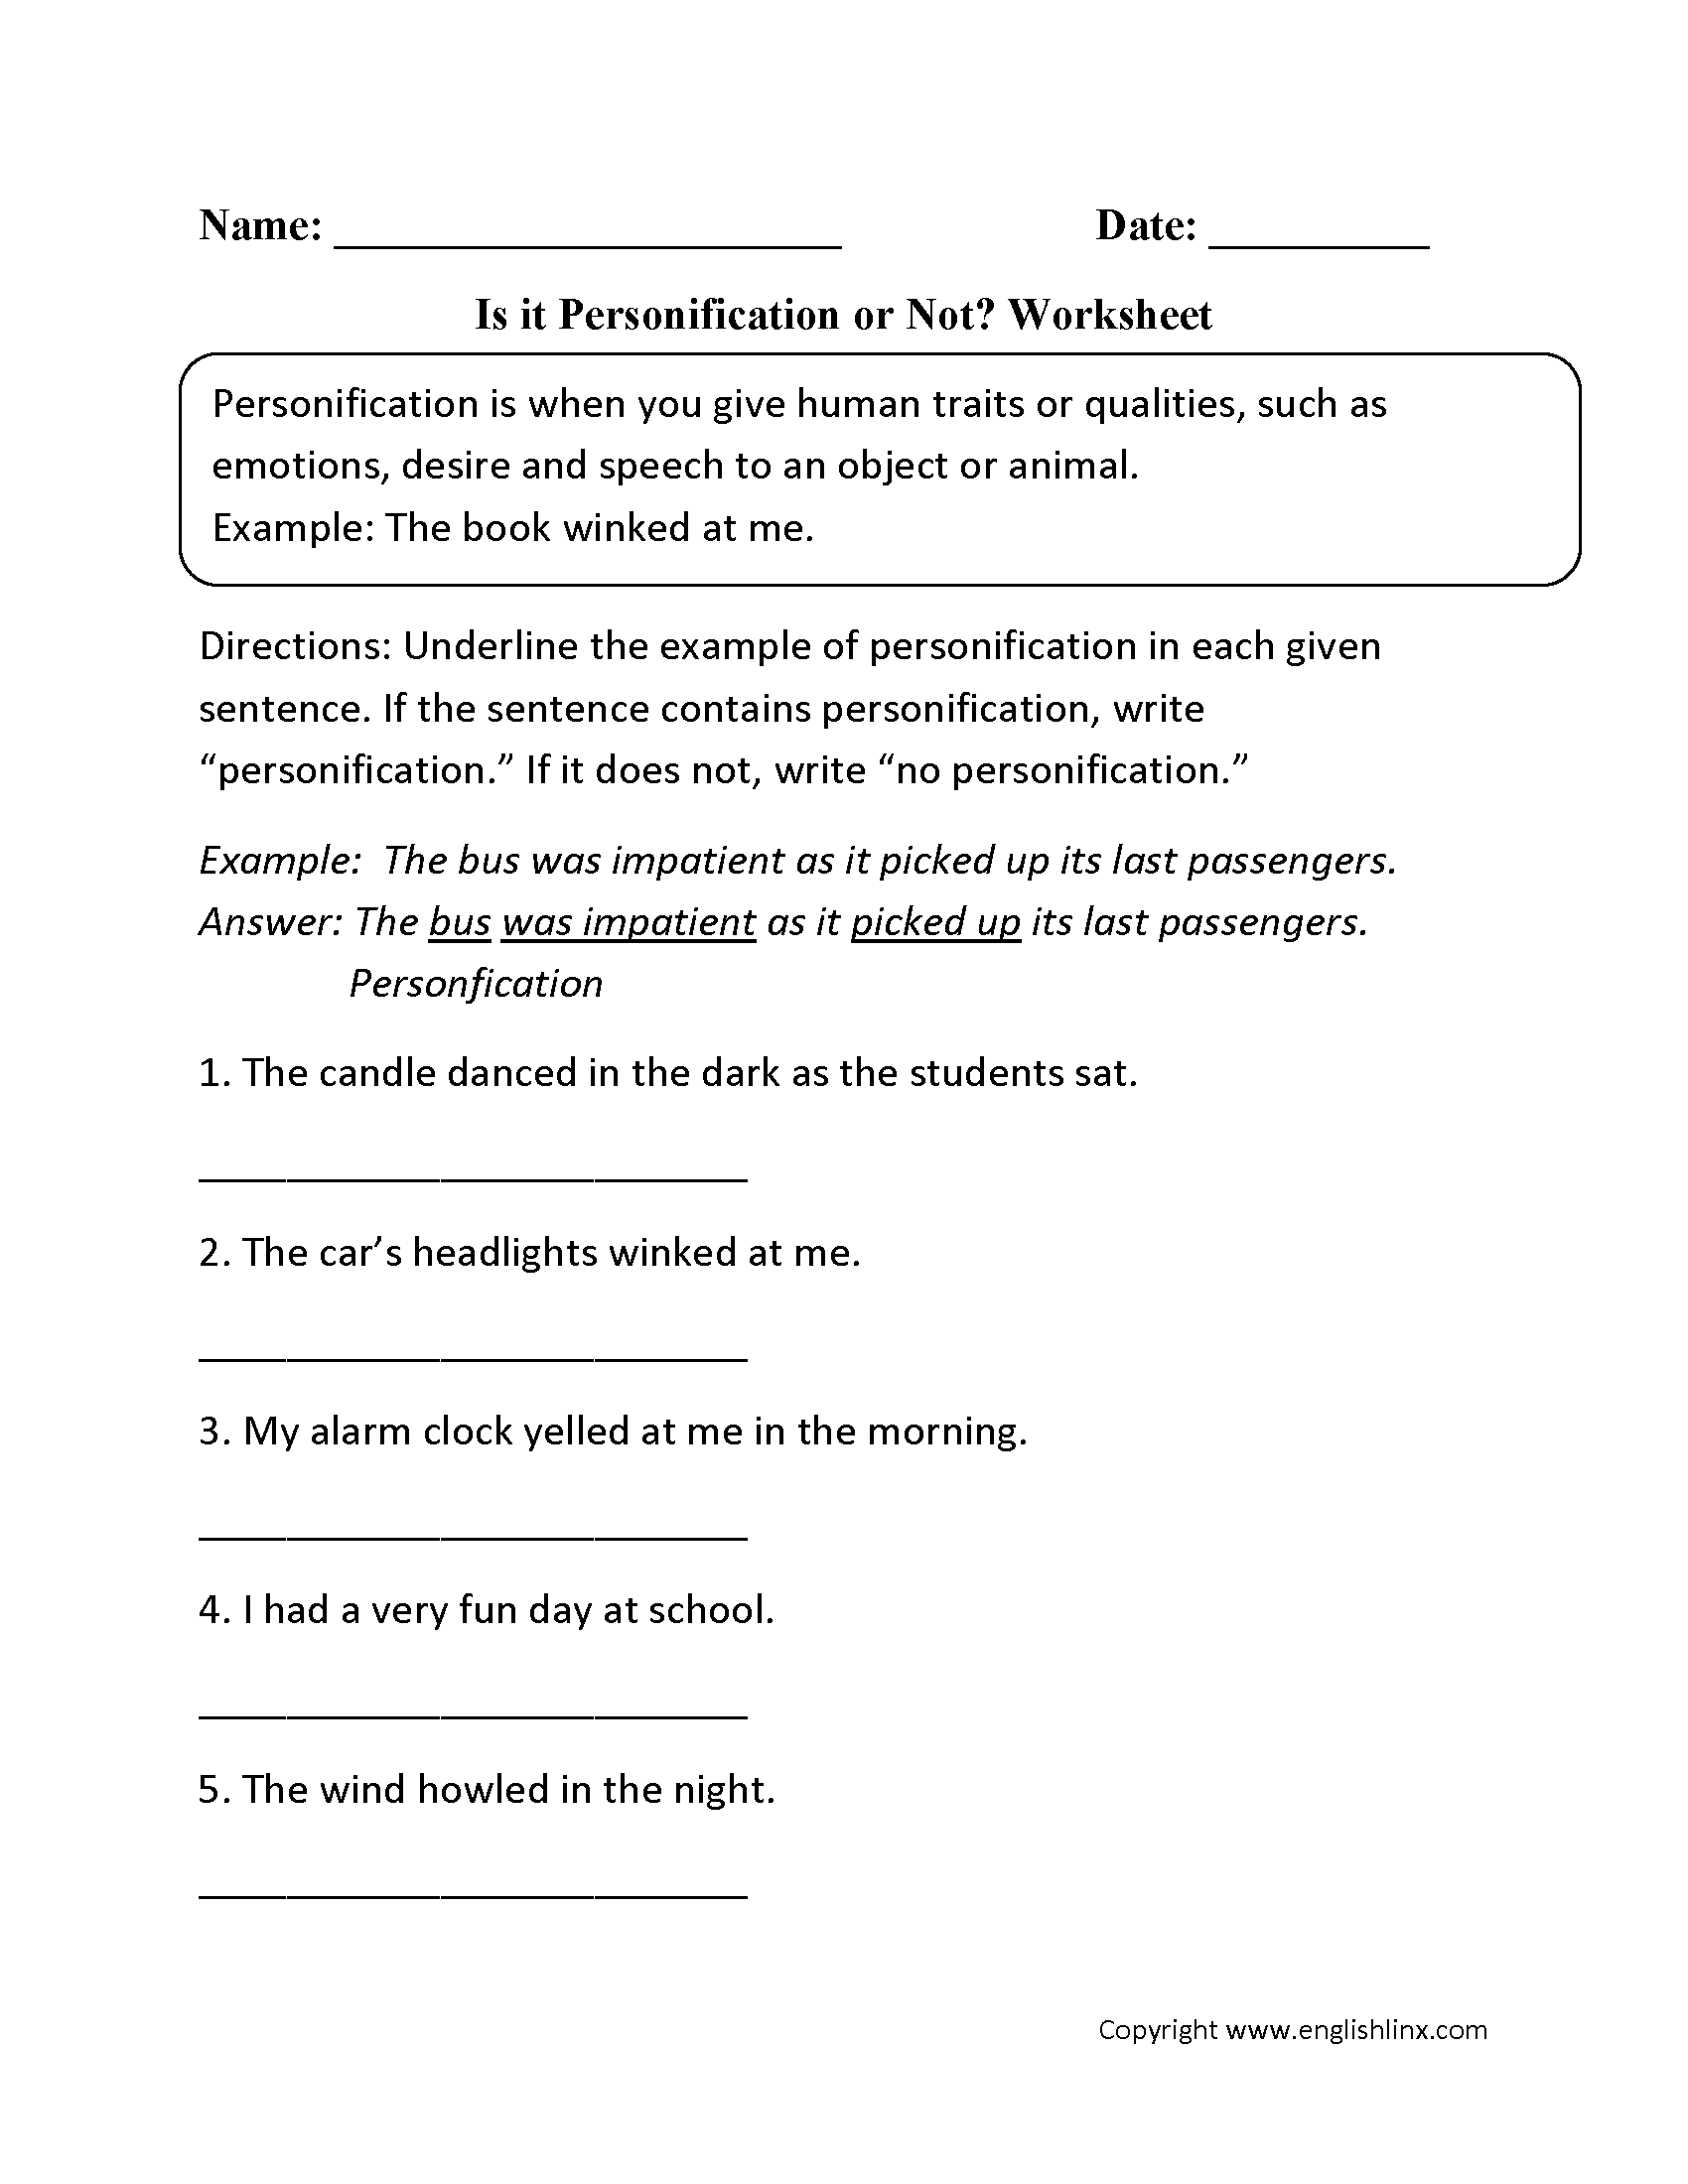 Is it Personification or Not Worksheet Learning